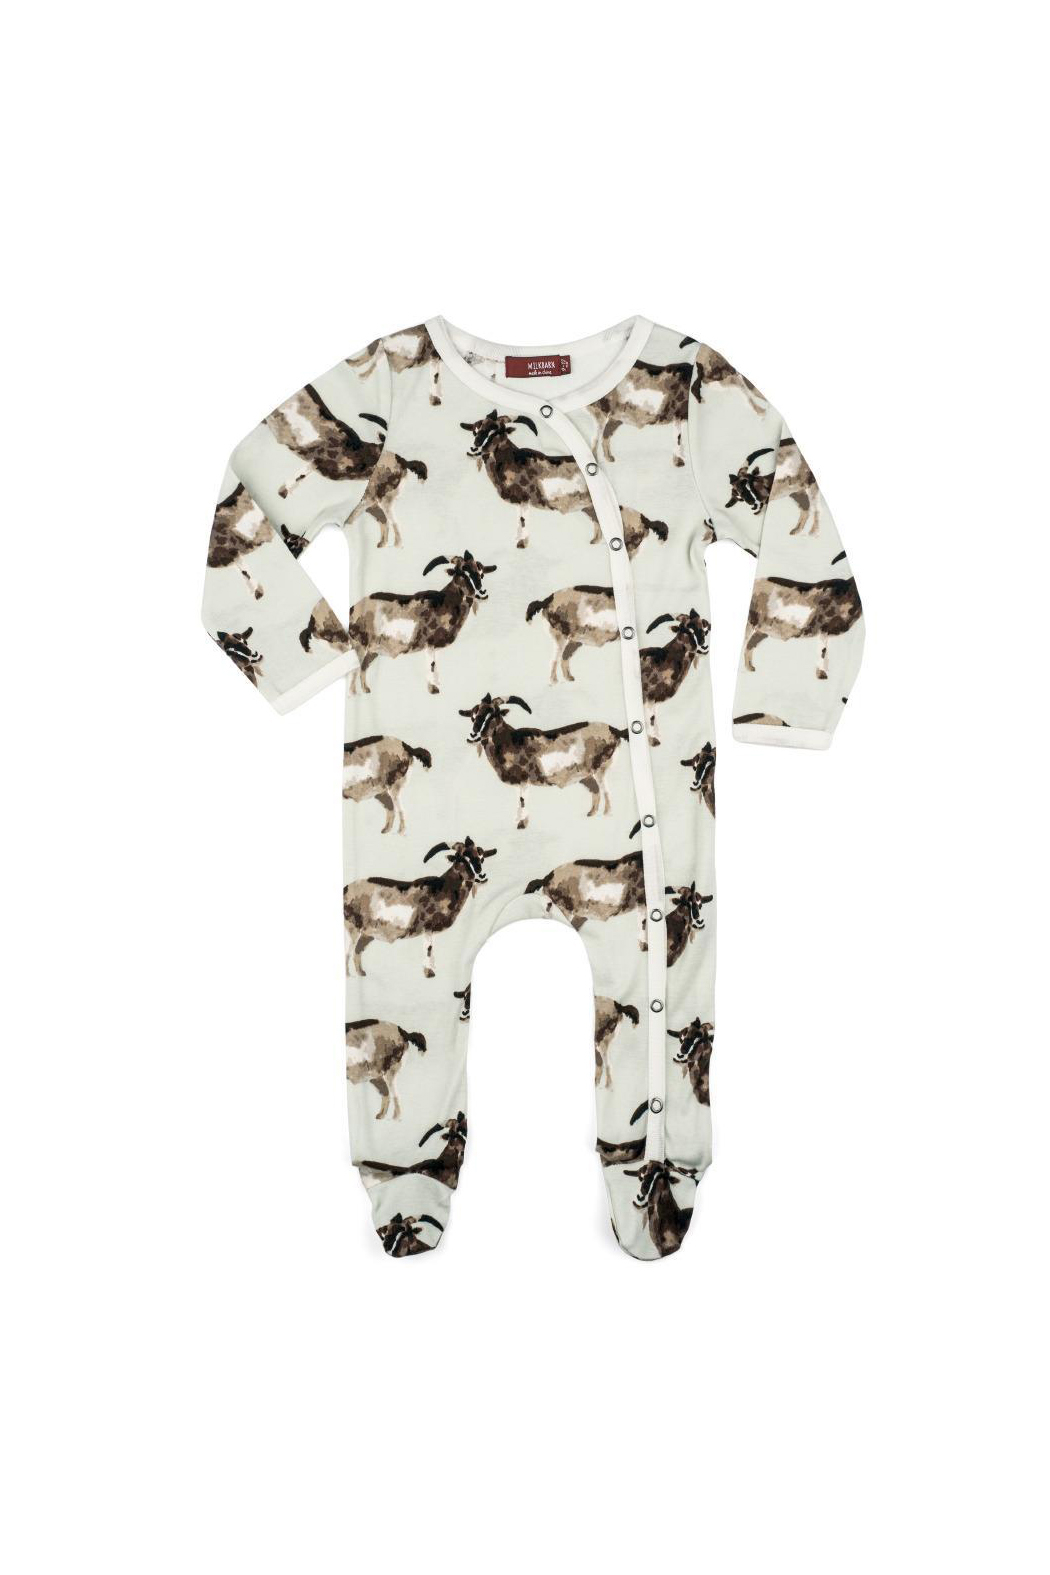 8ed0e65101d5 Milkbarn Organic Cotton Footed Romper from Oregon by Hopscotch Kids ...